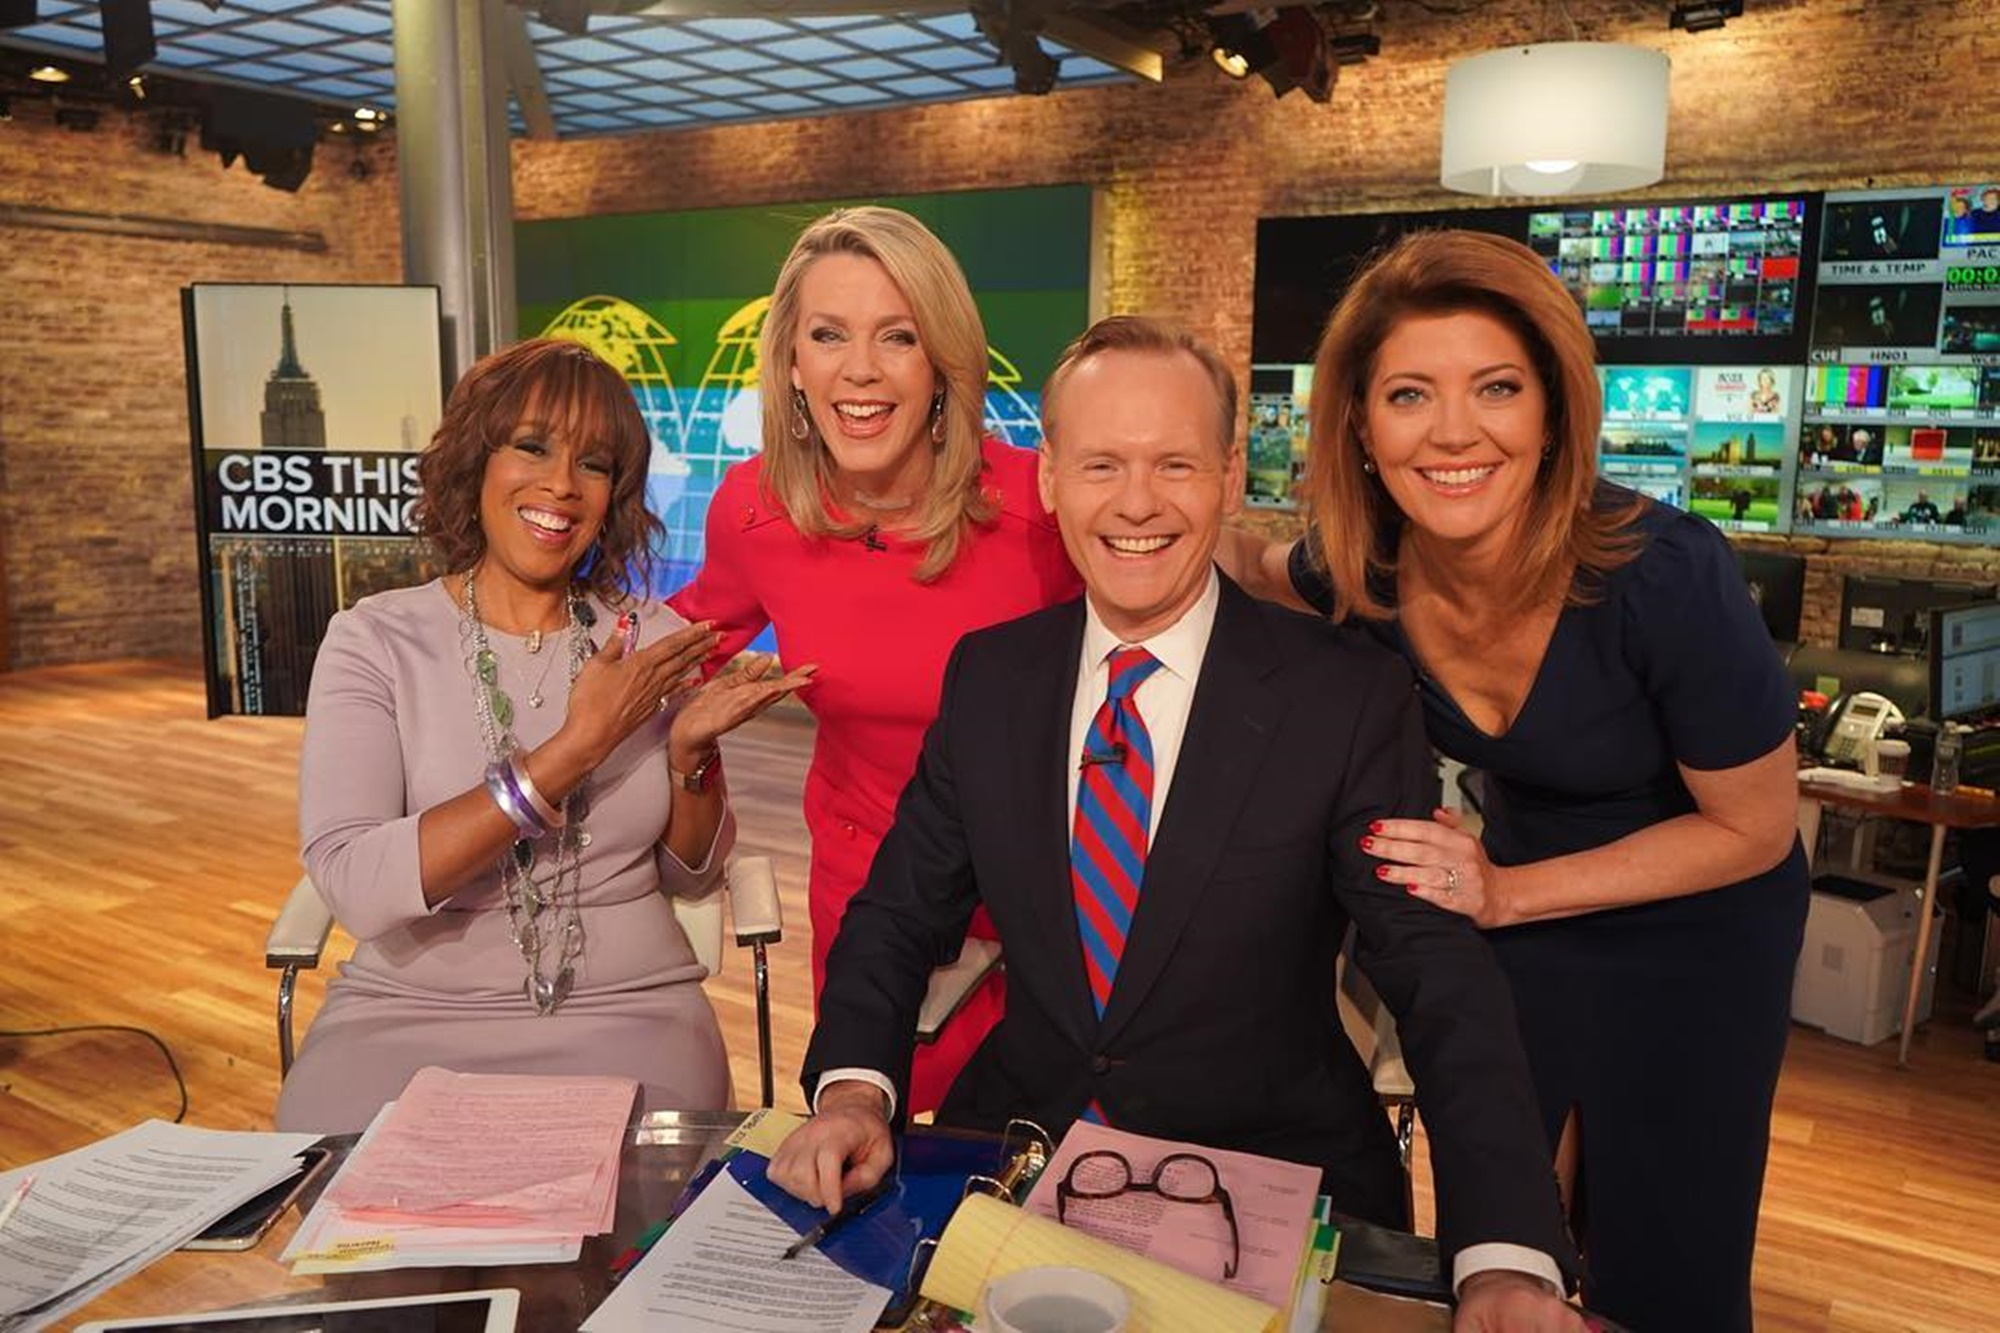 gayle-king-pushed-norah-odonnell-out-of-cbs-this-morning-some-fans-threatens-to-boycott-morning-program-if-she-moves-to-cbs-evening-news-as-reported